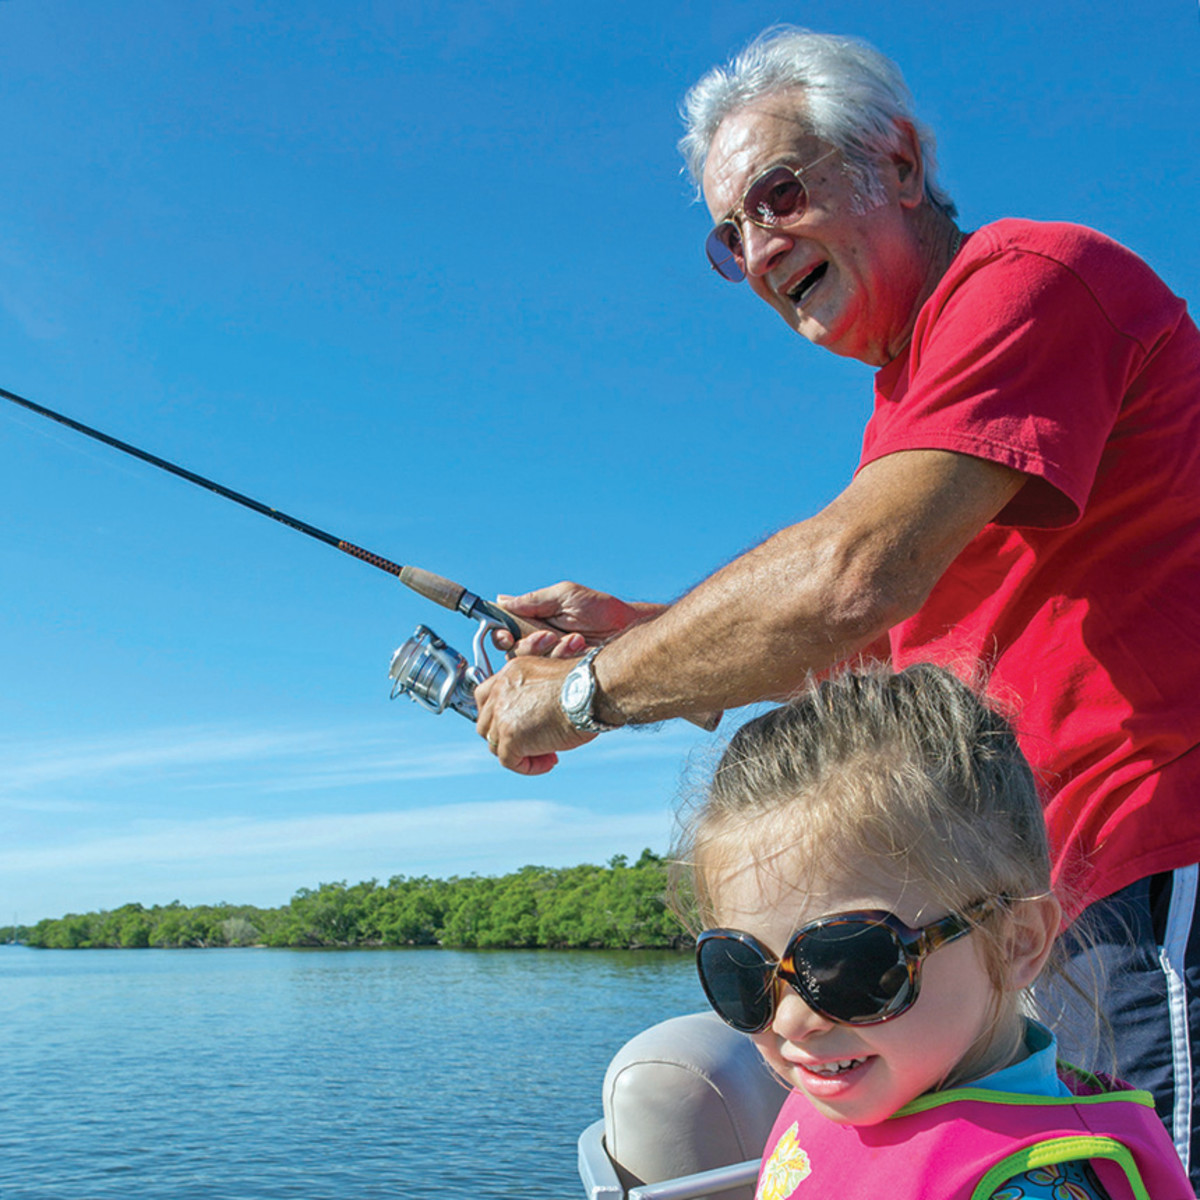 The boat-club model is successful in attracting different ages and